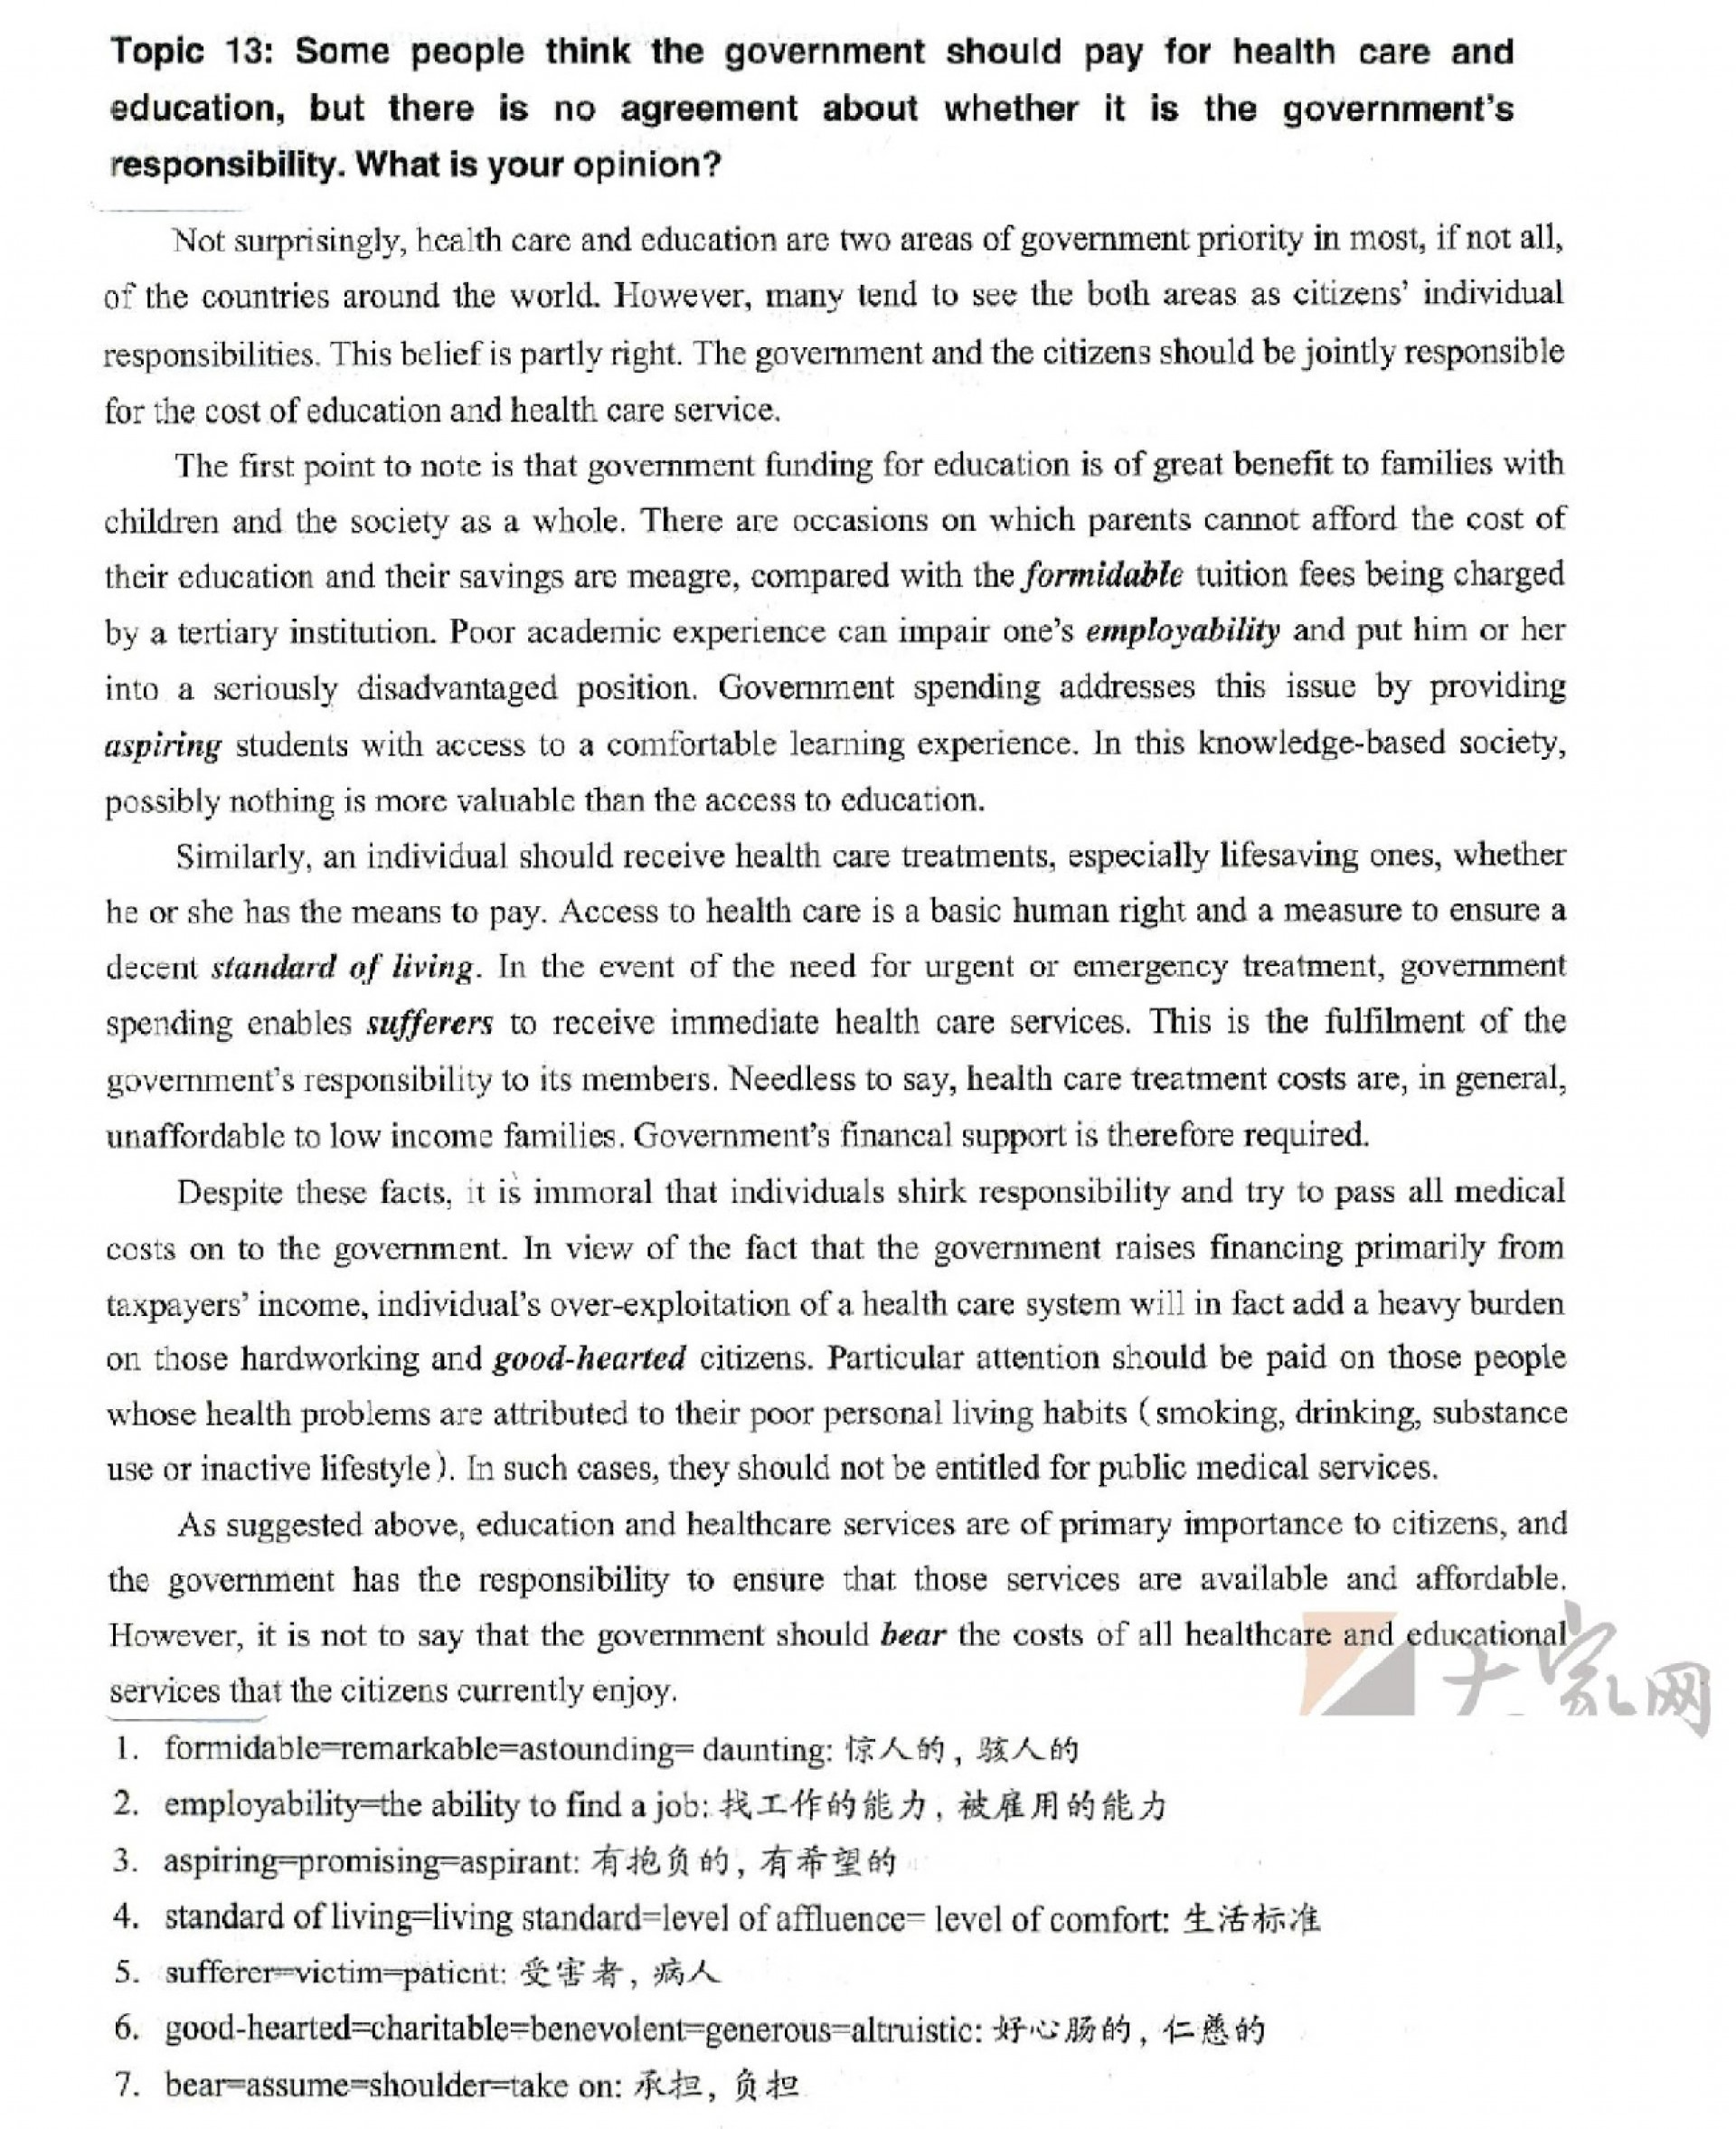 005 Essay Example Topics In Writing Unbelievable Interesting For Competition Hindi Ielts With Answers Pdf 1920